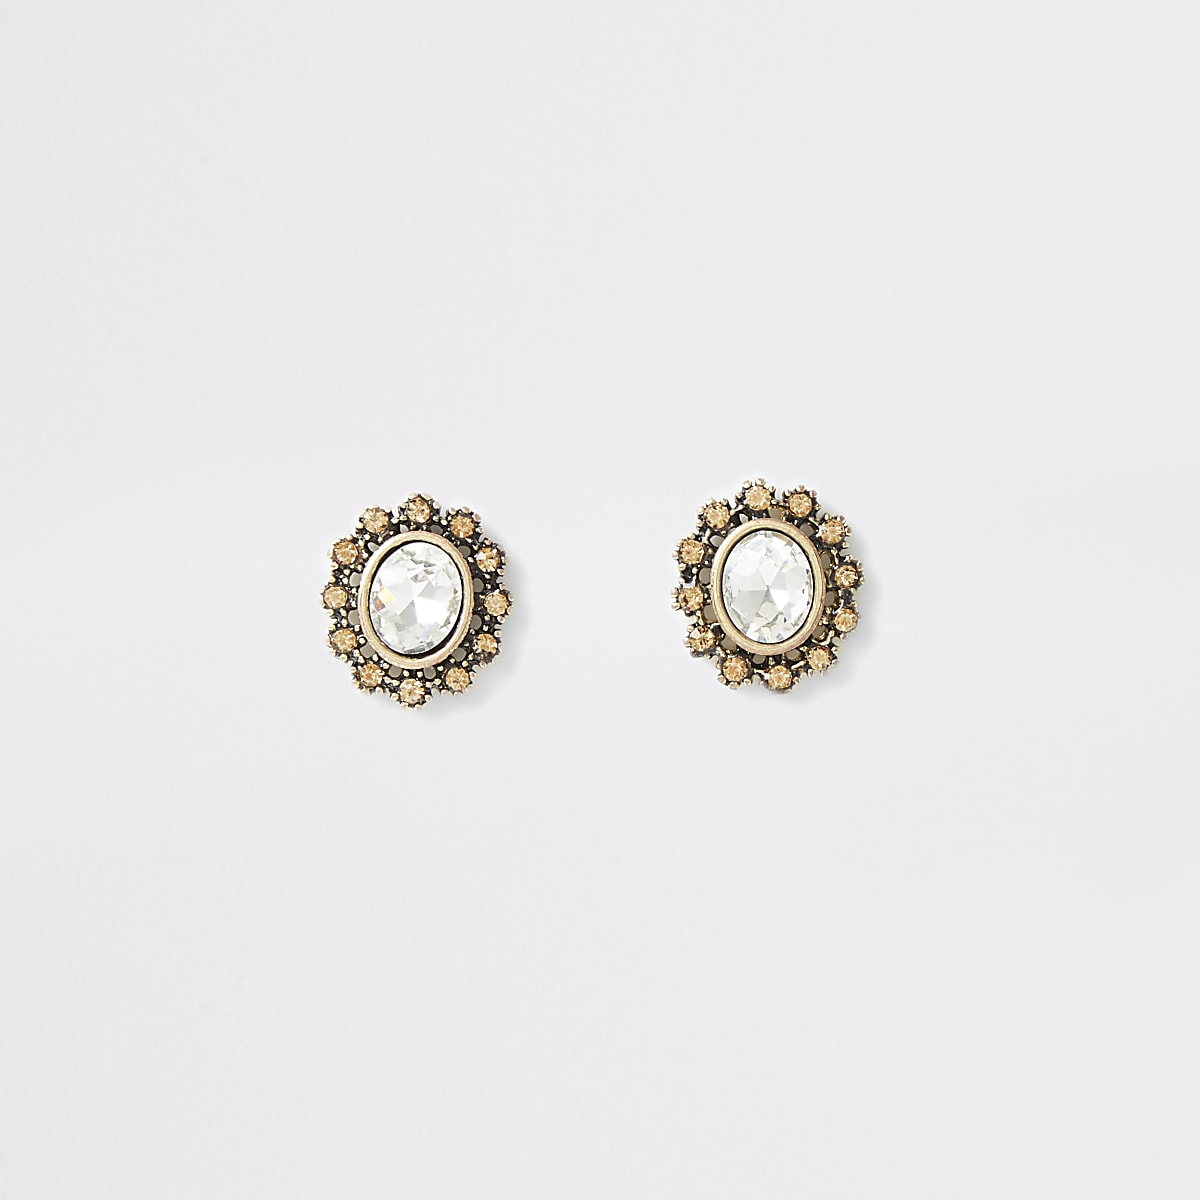 Gold color oval crystal stud earrings